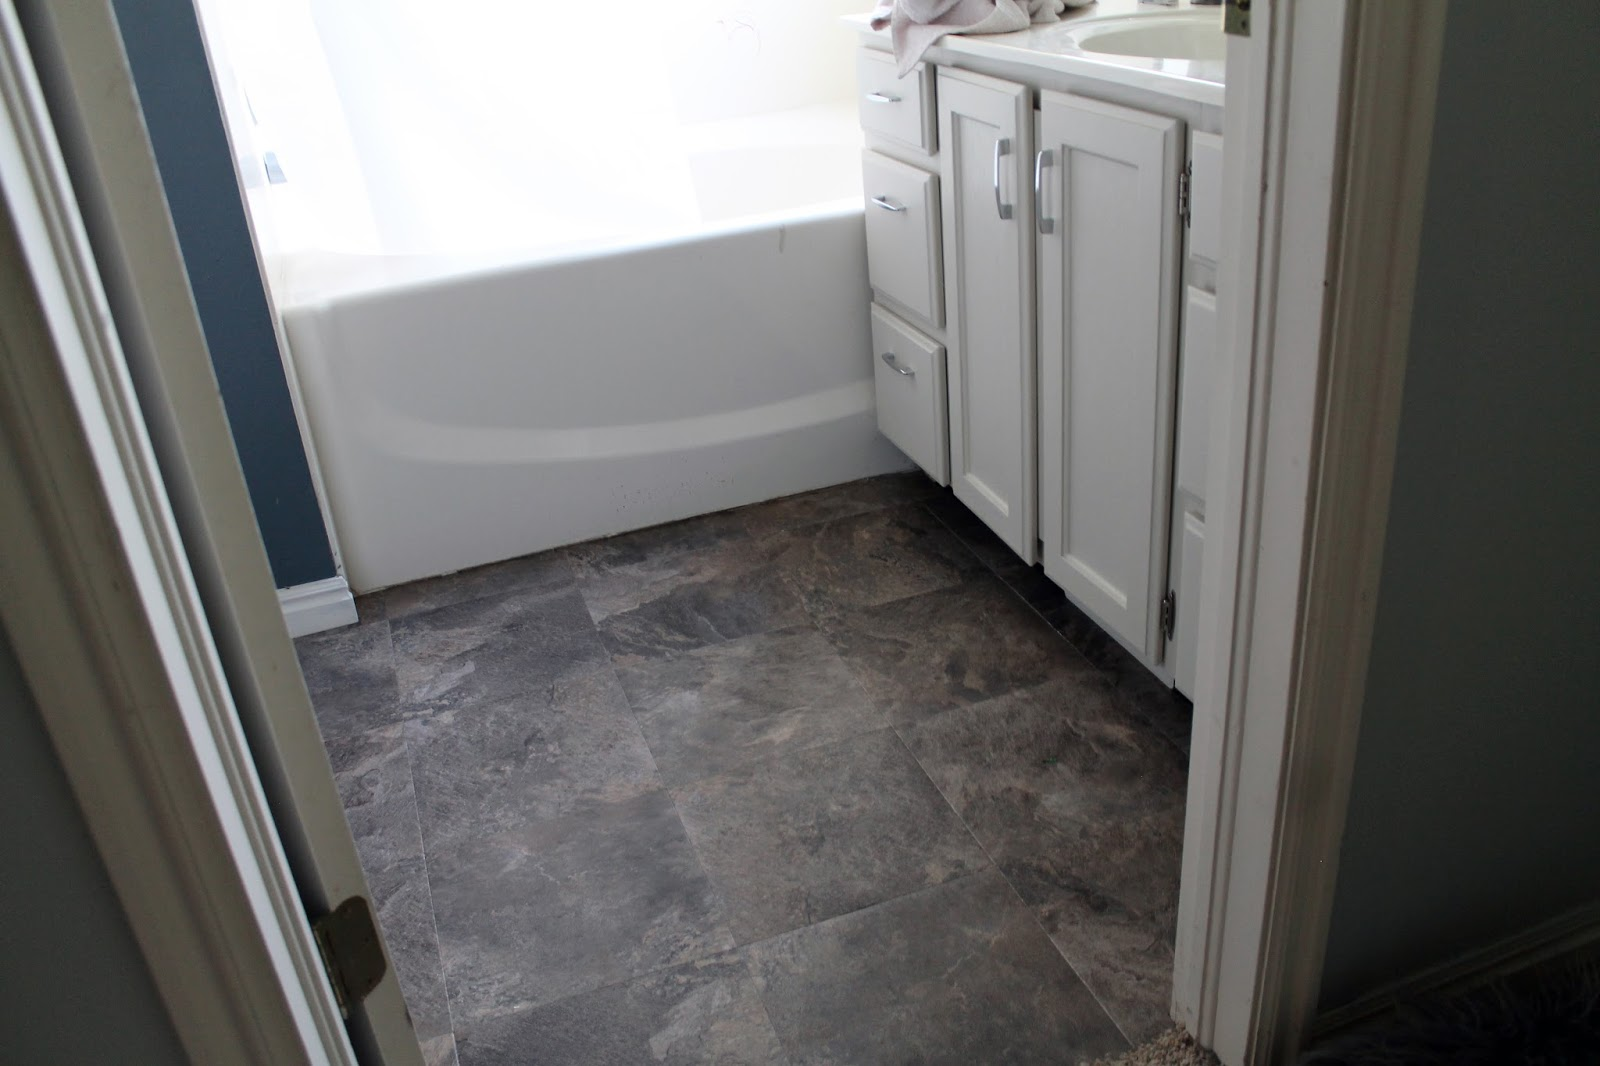 Peel and stick bathroom floors chris loves julia for Tile linoleum bathroom